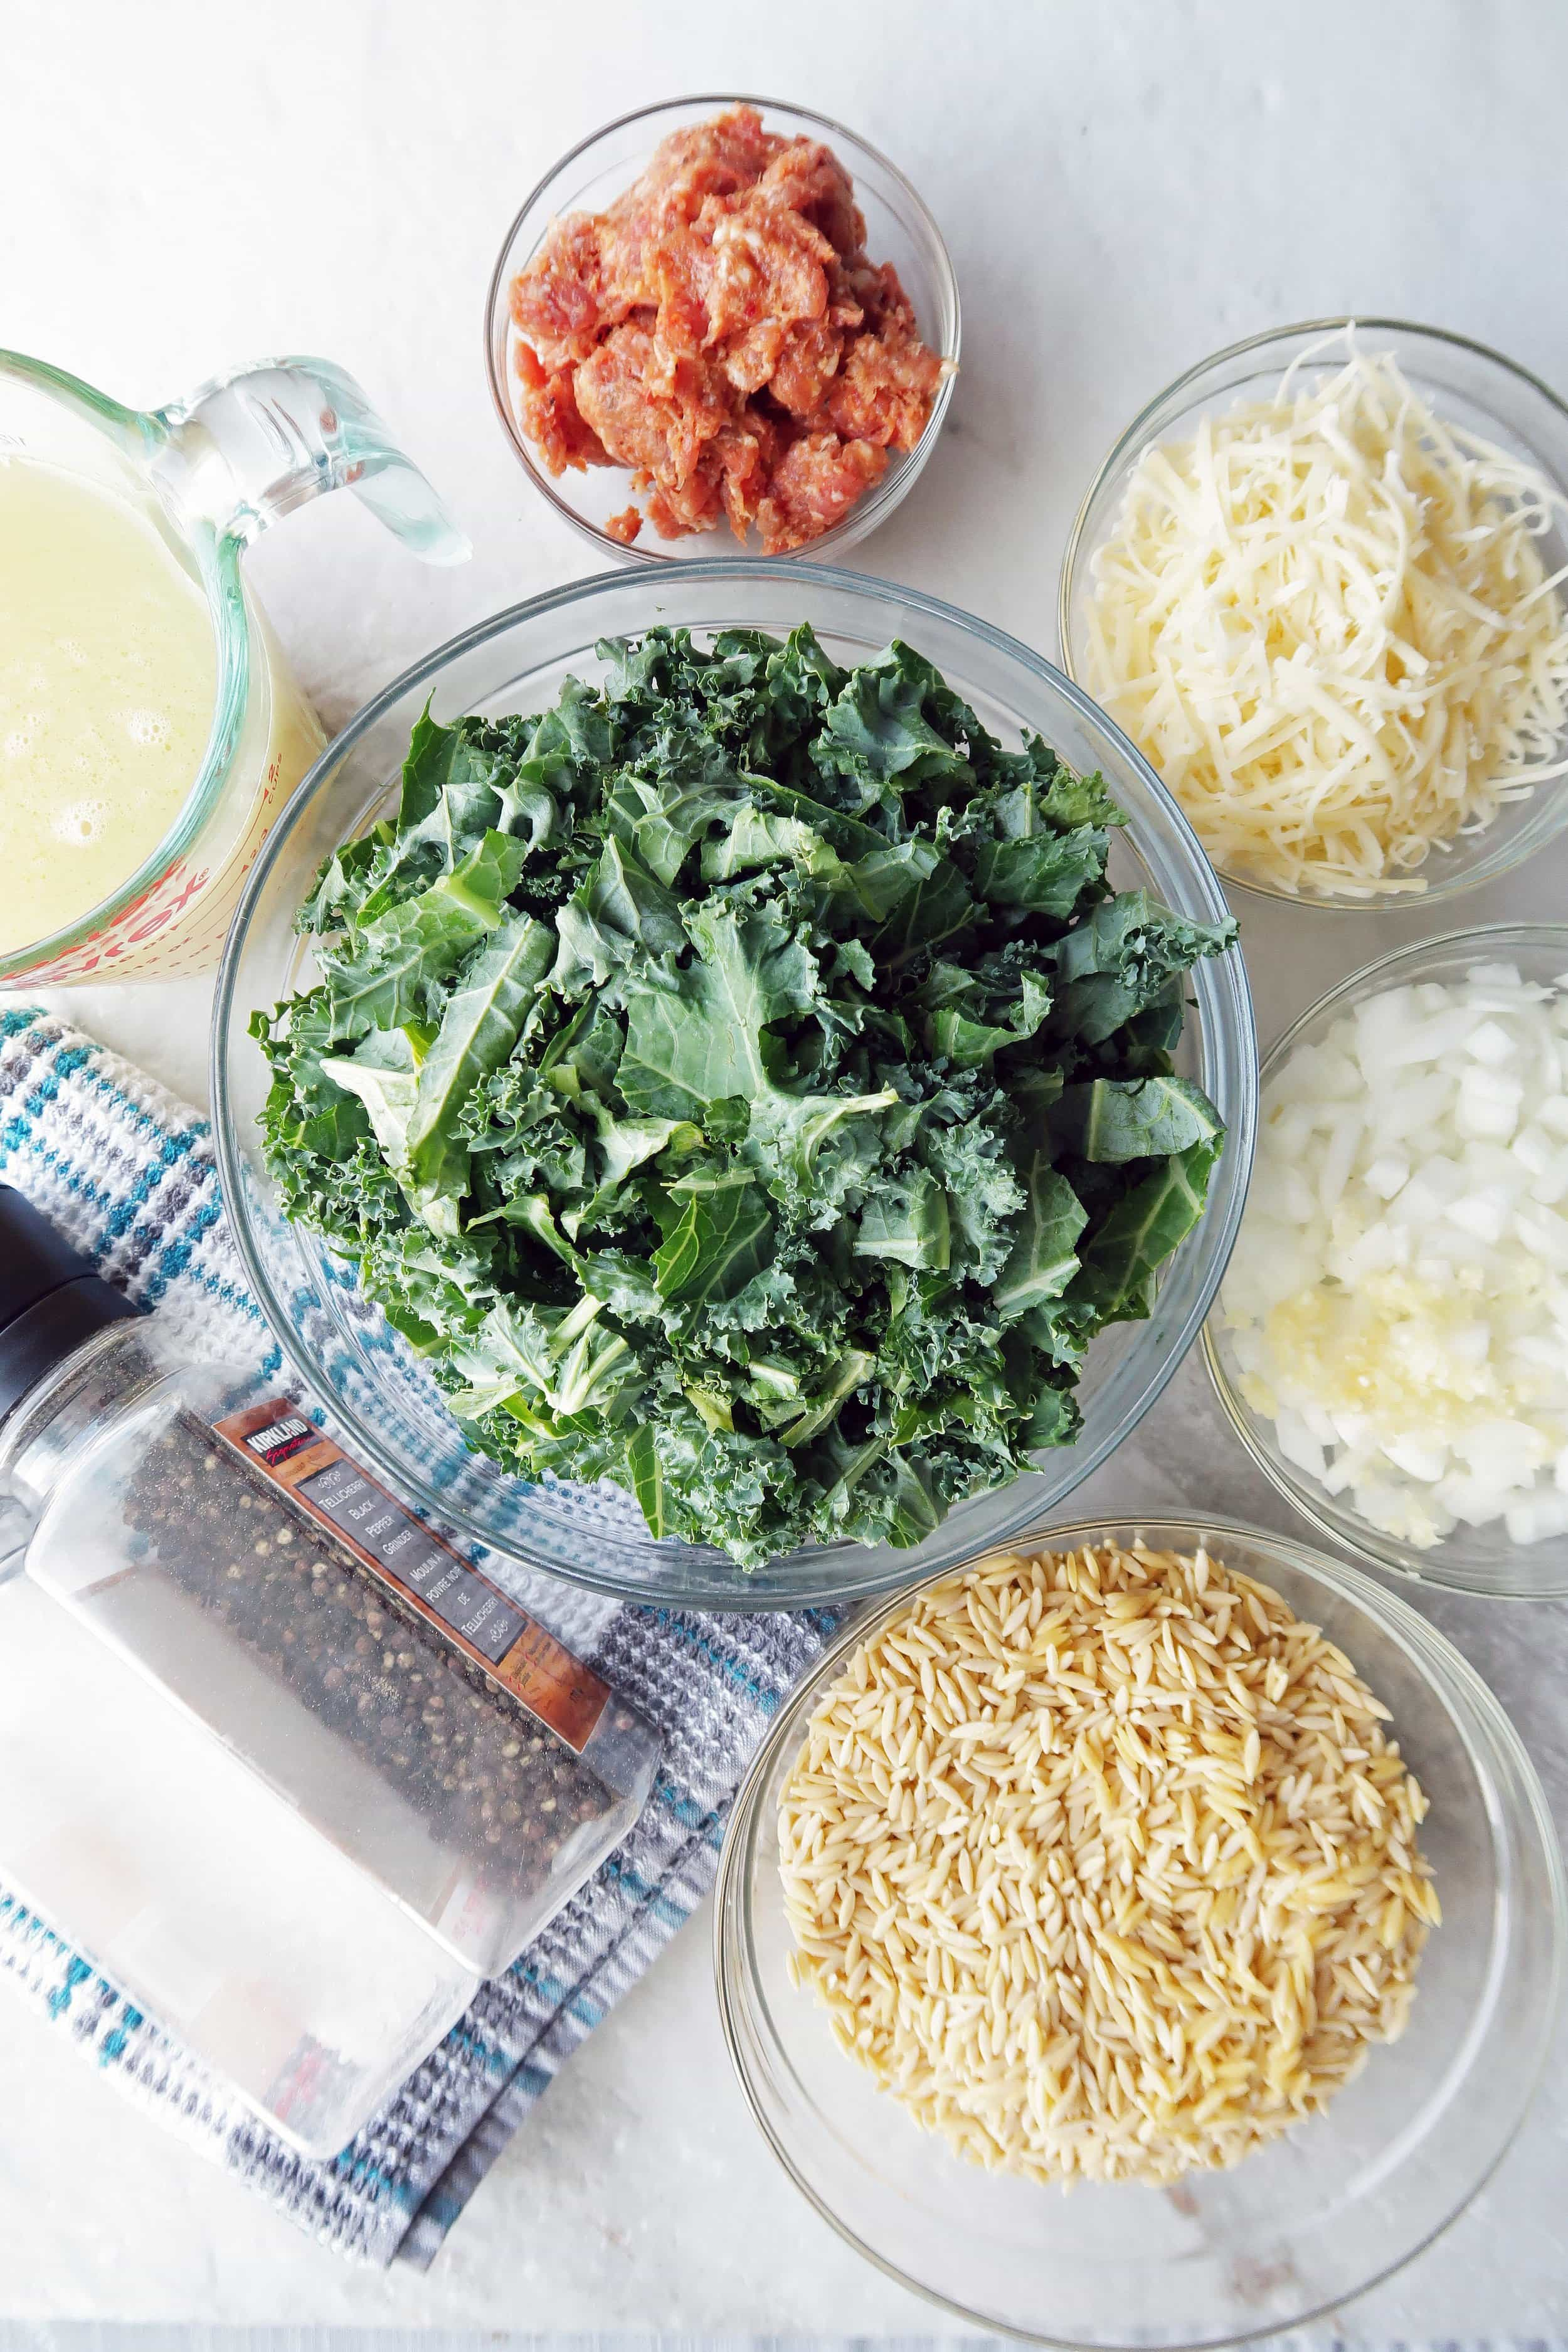 Orzo, onions, kale, cheese, sausage, chicken broth in different glass bowls with salt and pepper grinders.